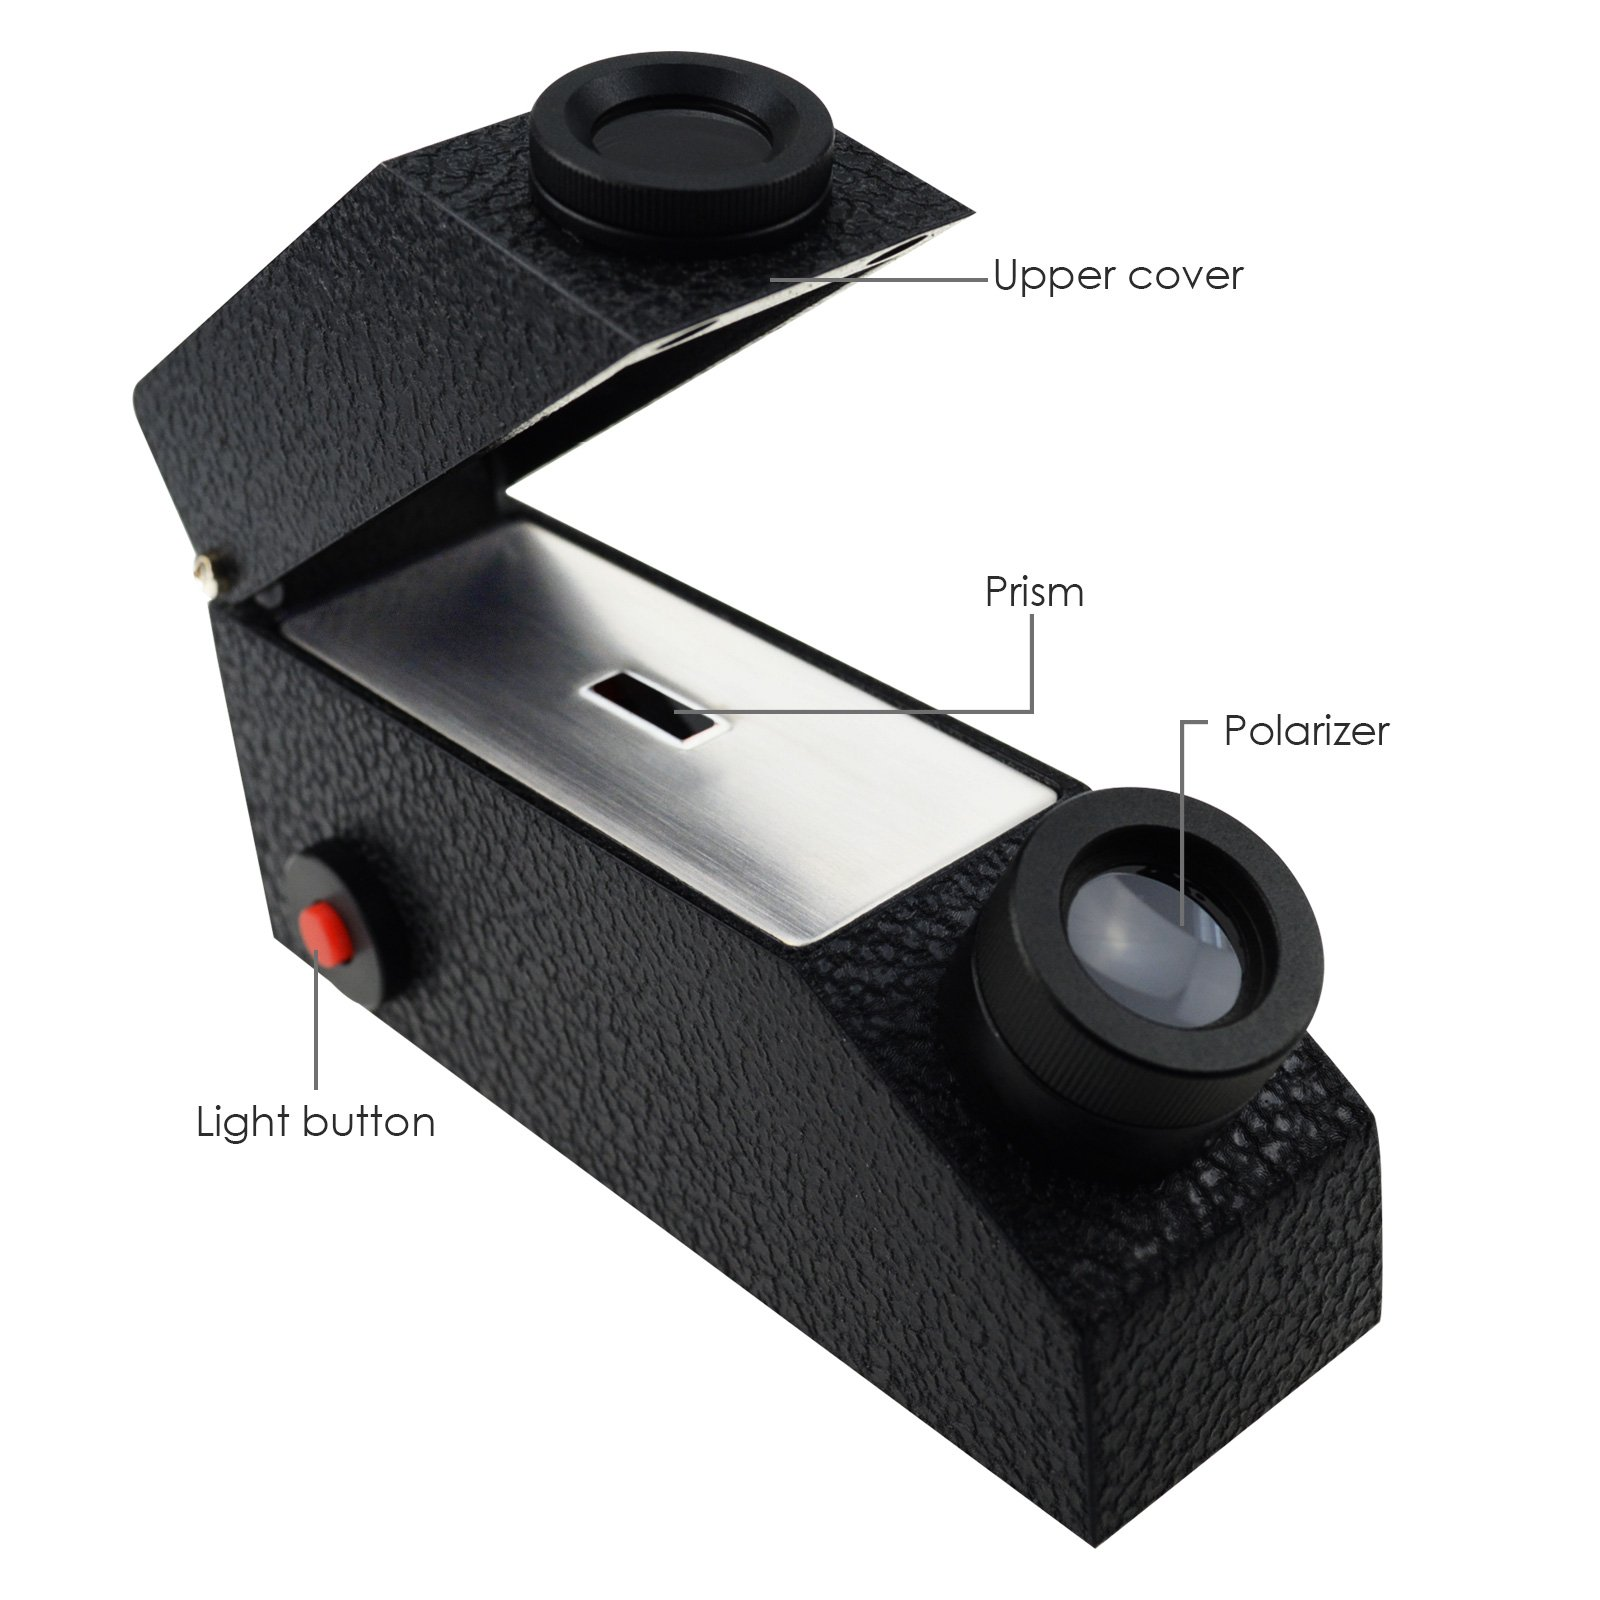 Gain Express Gem Gemological Gemelogy Refractometer with Built-in LED Light + RI Oil + 1.30-1.81 RI Range + 0.01 nD Scale Division by Gain Express (Image #4)